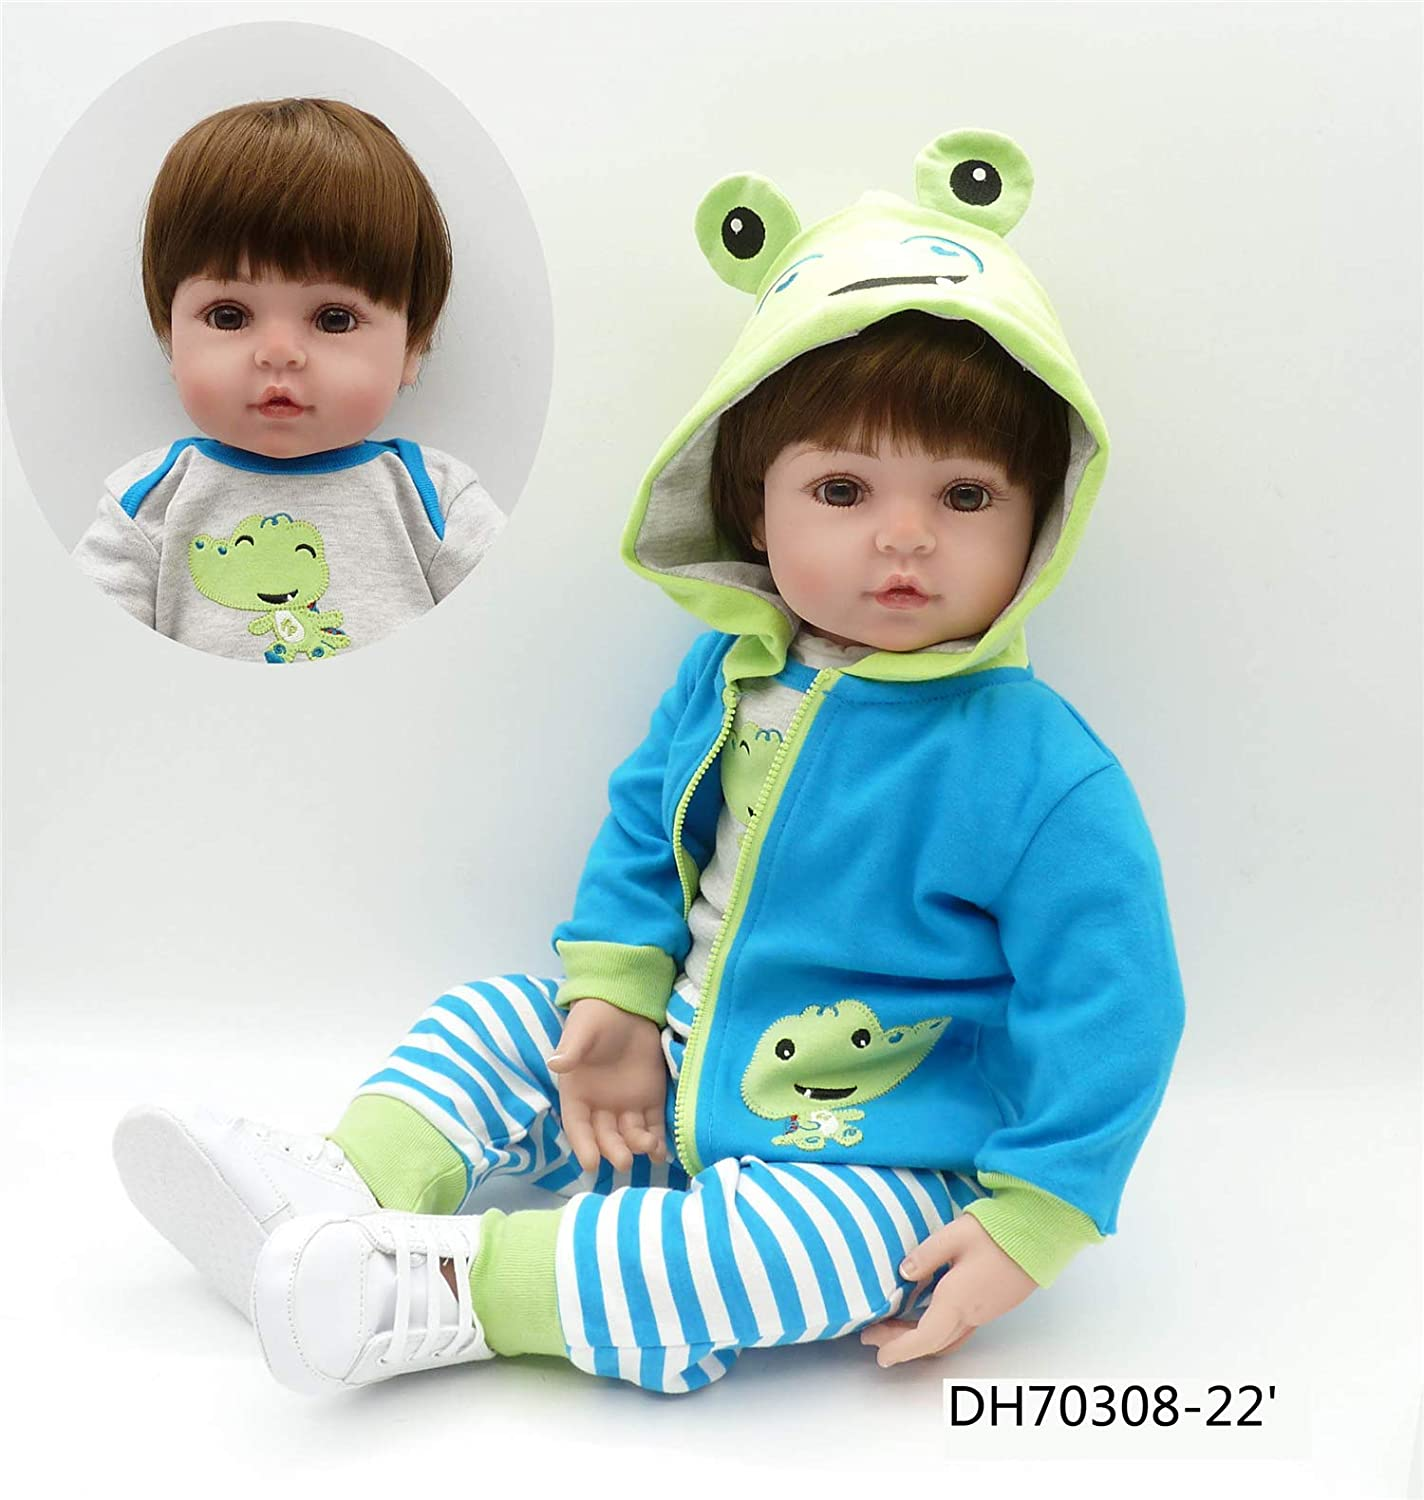 Angelbaby Doll Kansas City Mall Reborn Toddlers Fixed price for sale Dolls Boy That 24 Look inch Real